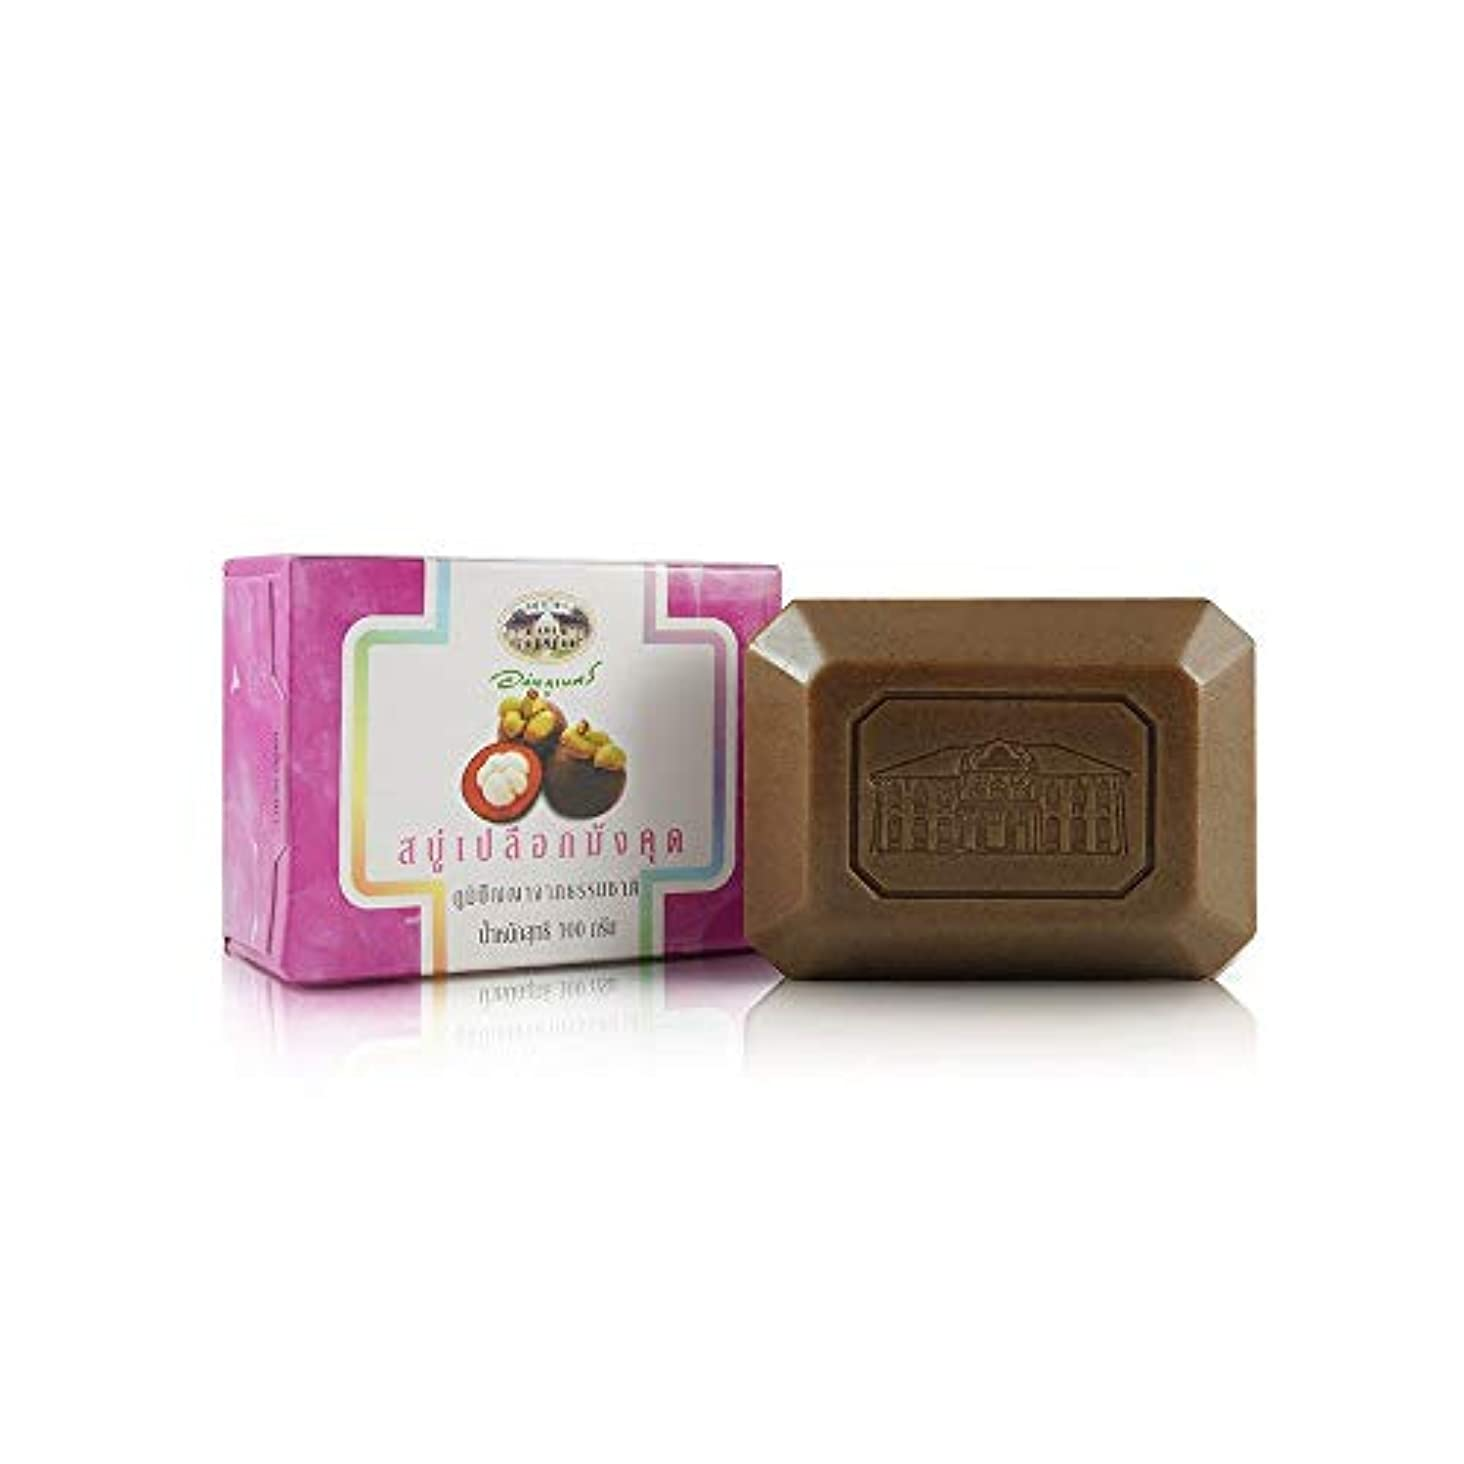 Abhaibhubejhr Mangosteen Peel Skin Herbal Body Cleansing Soap 100g. Abhaibhubejhrマンゴスチンピールスキンハーブボディクレンジングソープ100...